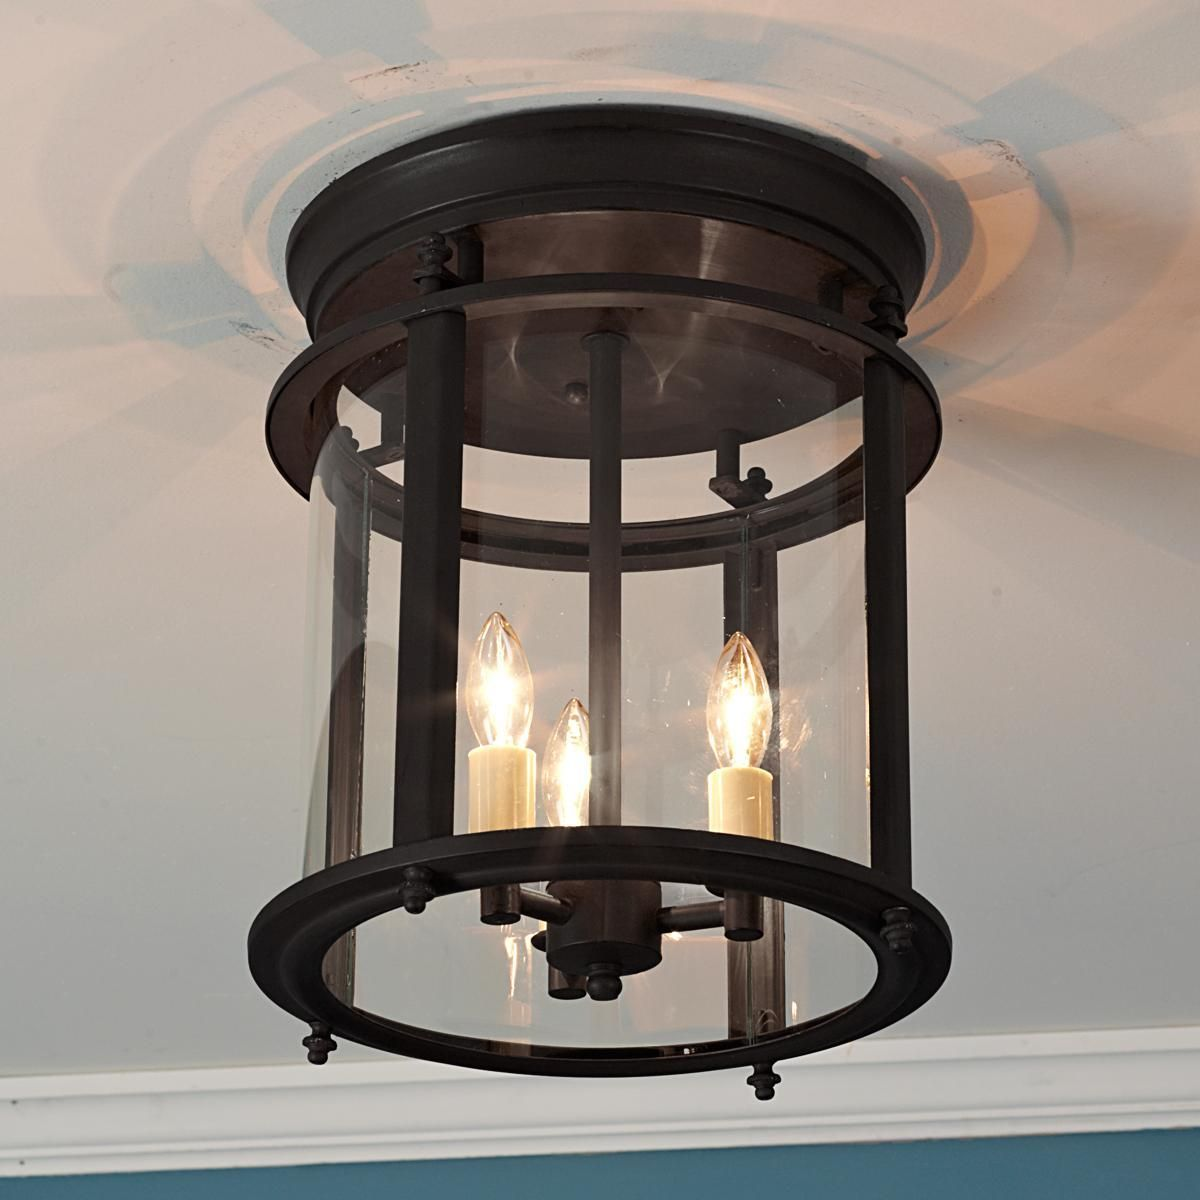 Classic Ceiling Lantern Large Home Ceiling Light